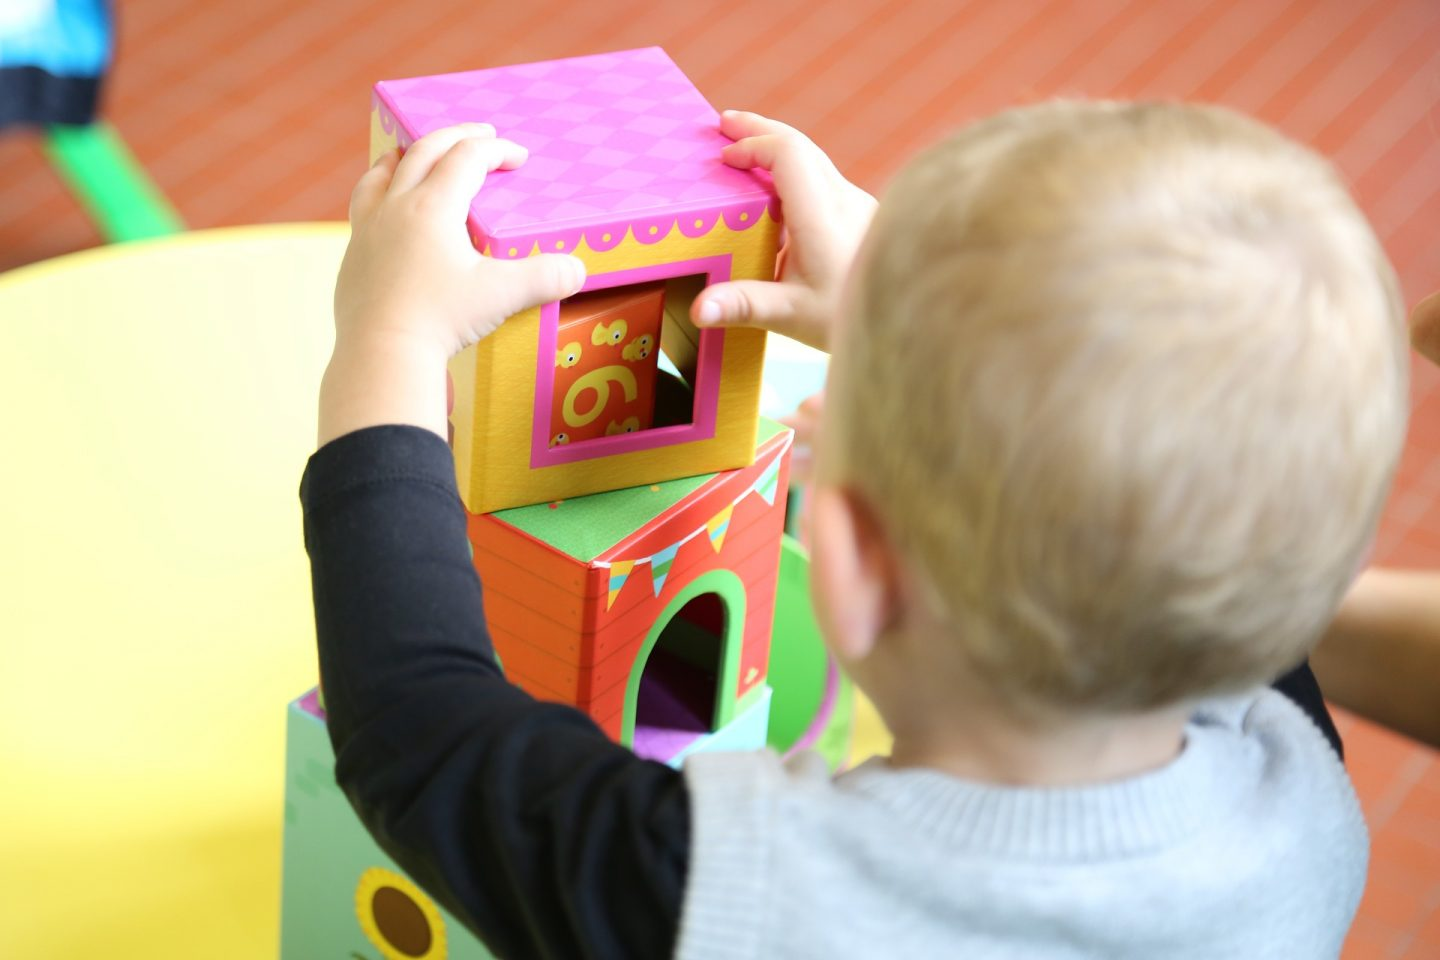 NEWS: Toddlers risk losing fingers in home door crush accidents